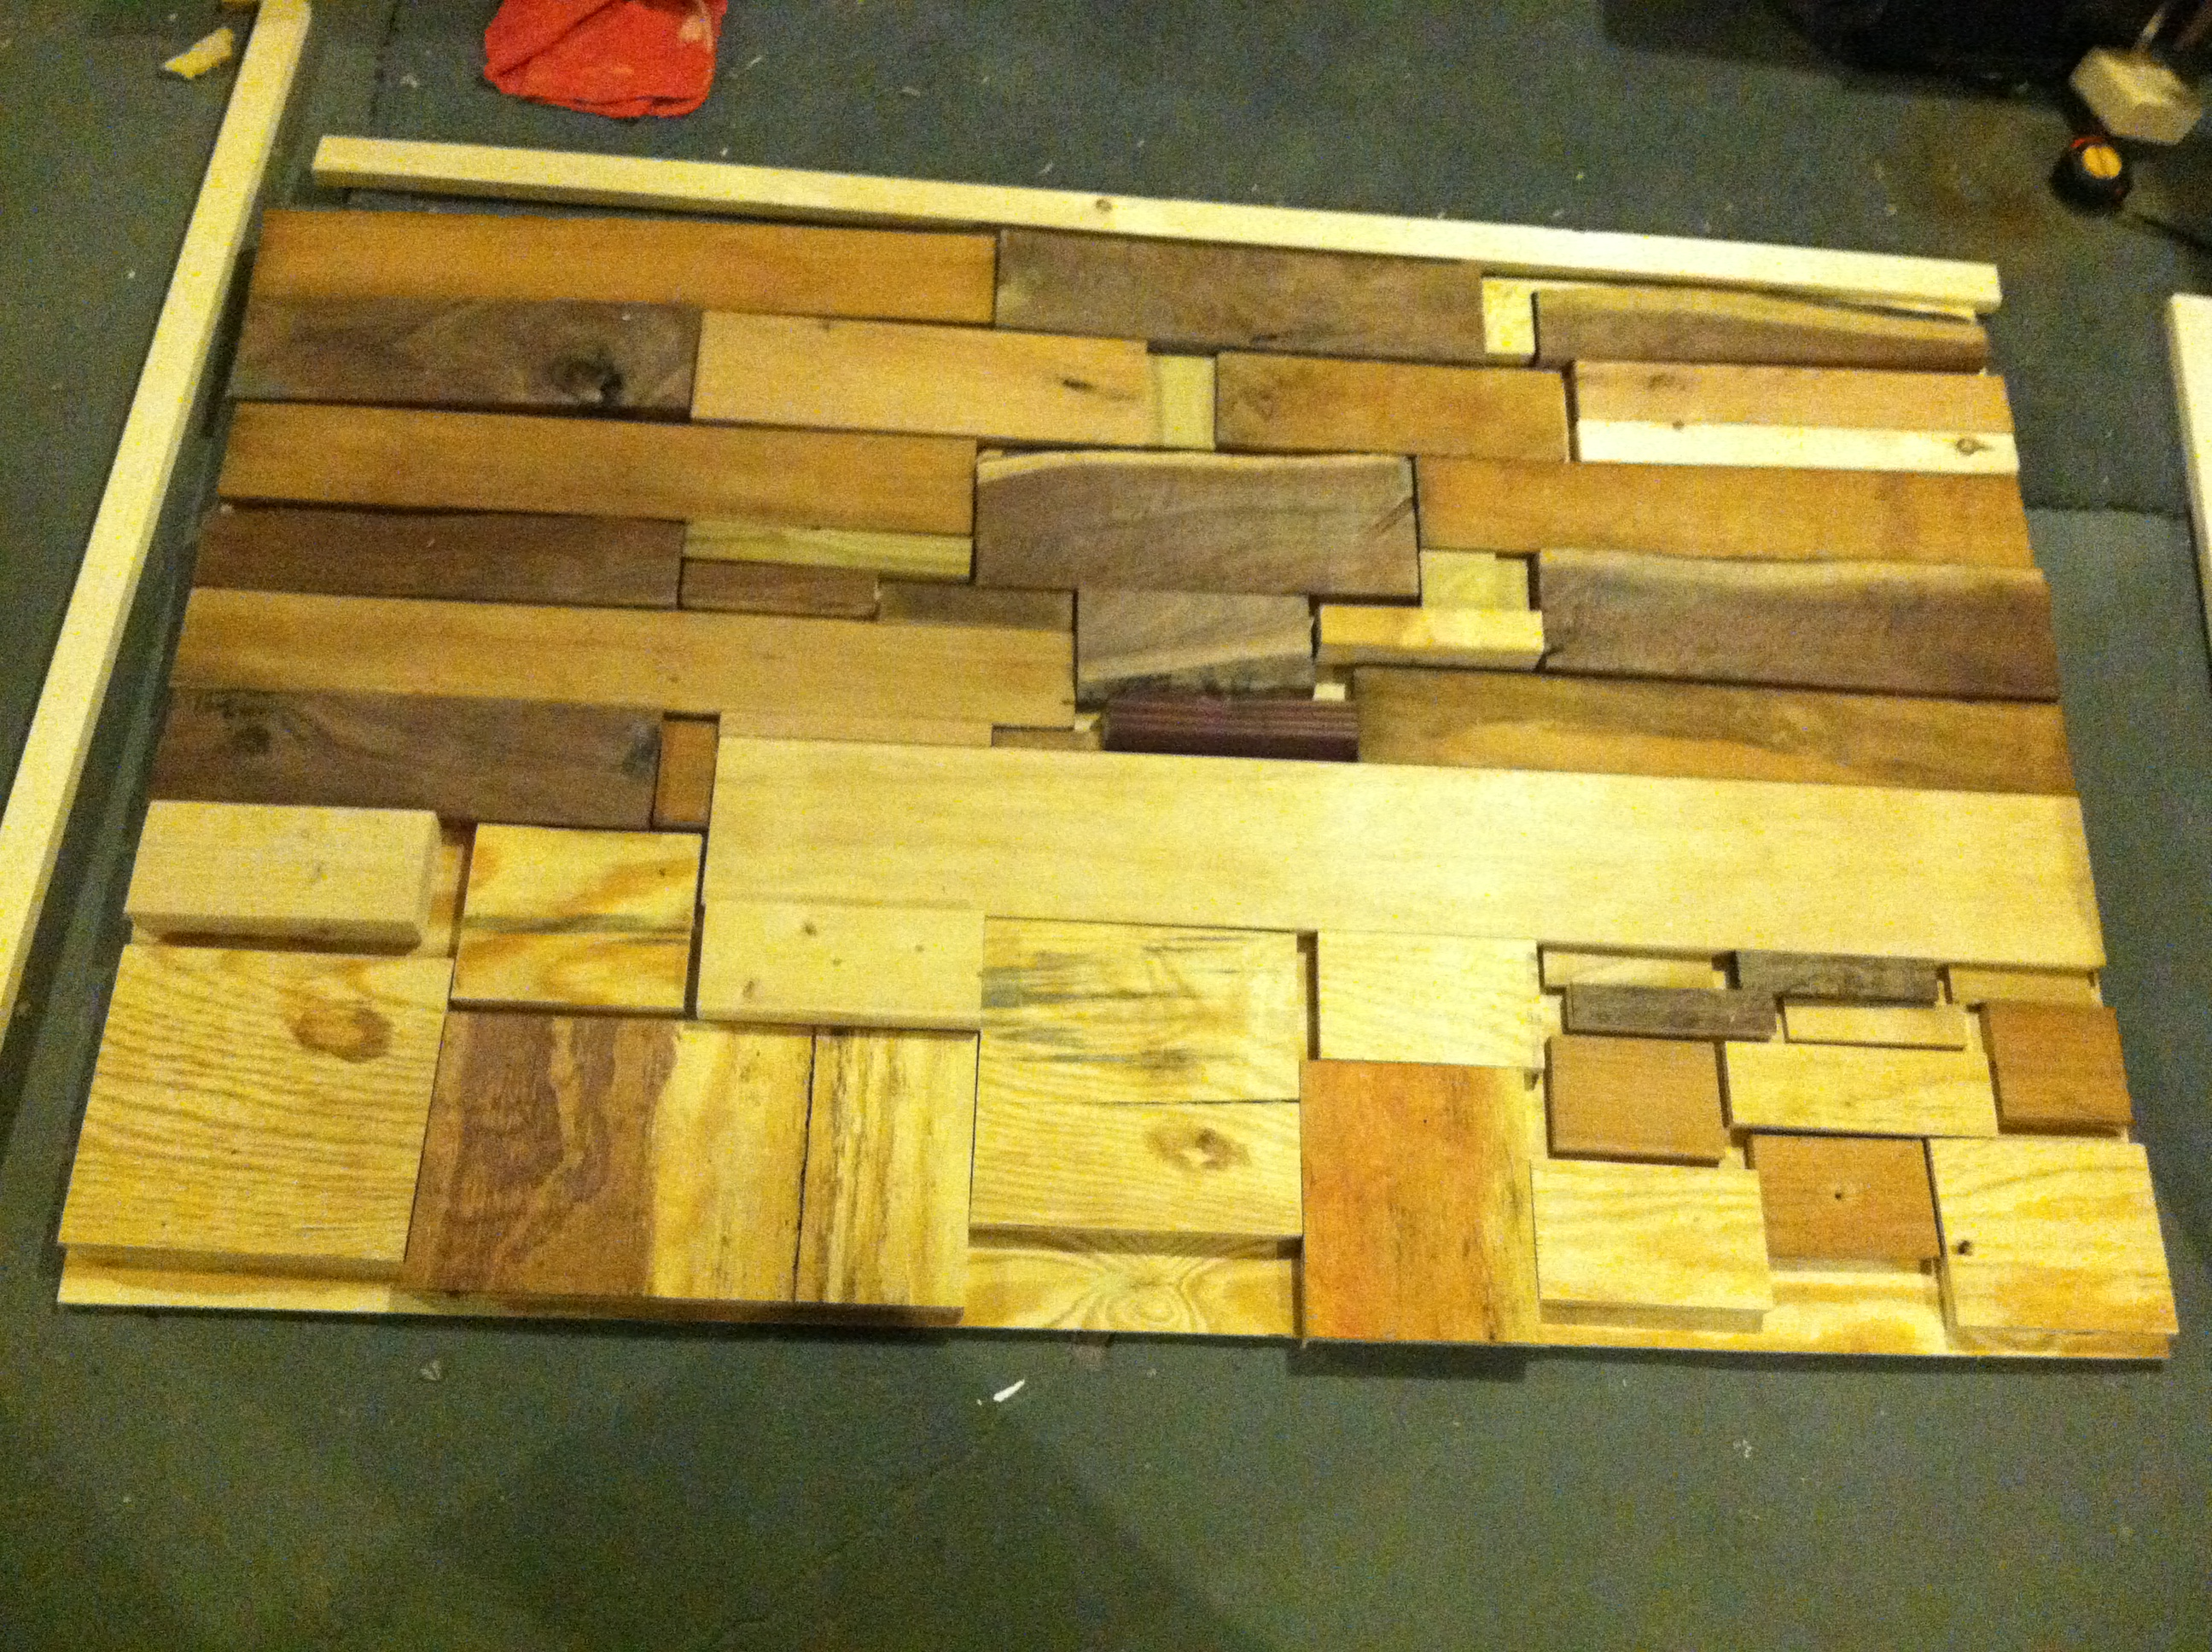 Amazing photo of Then we got started on staining … each piece of wood took the stain  with #C2BF09 color and 2592x1936 pixels